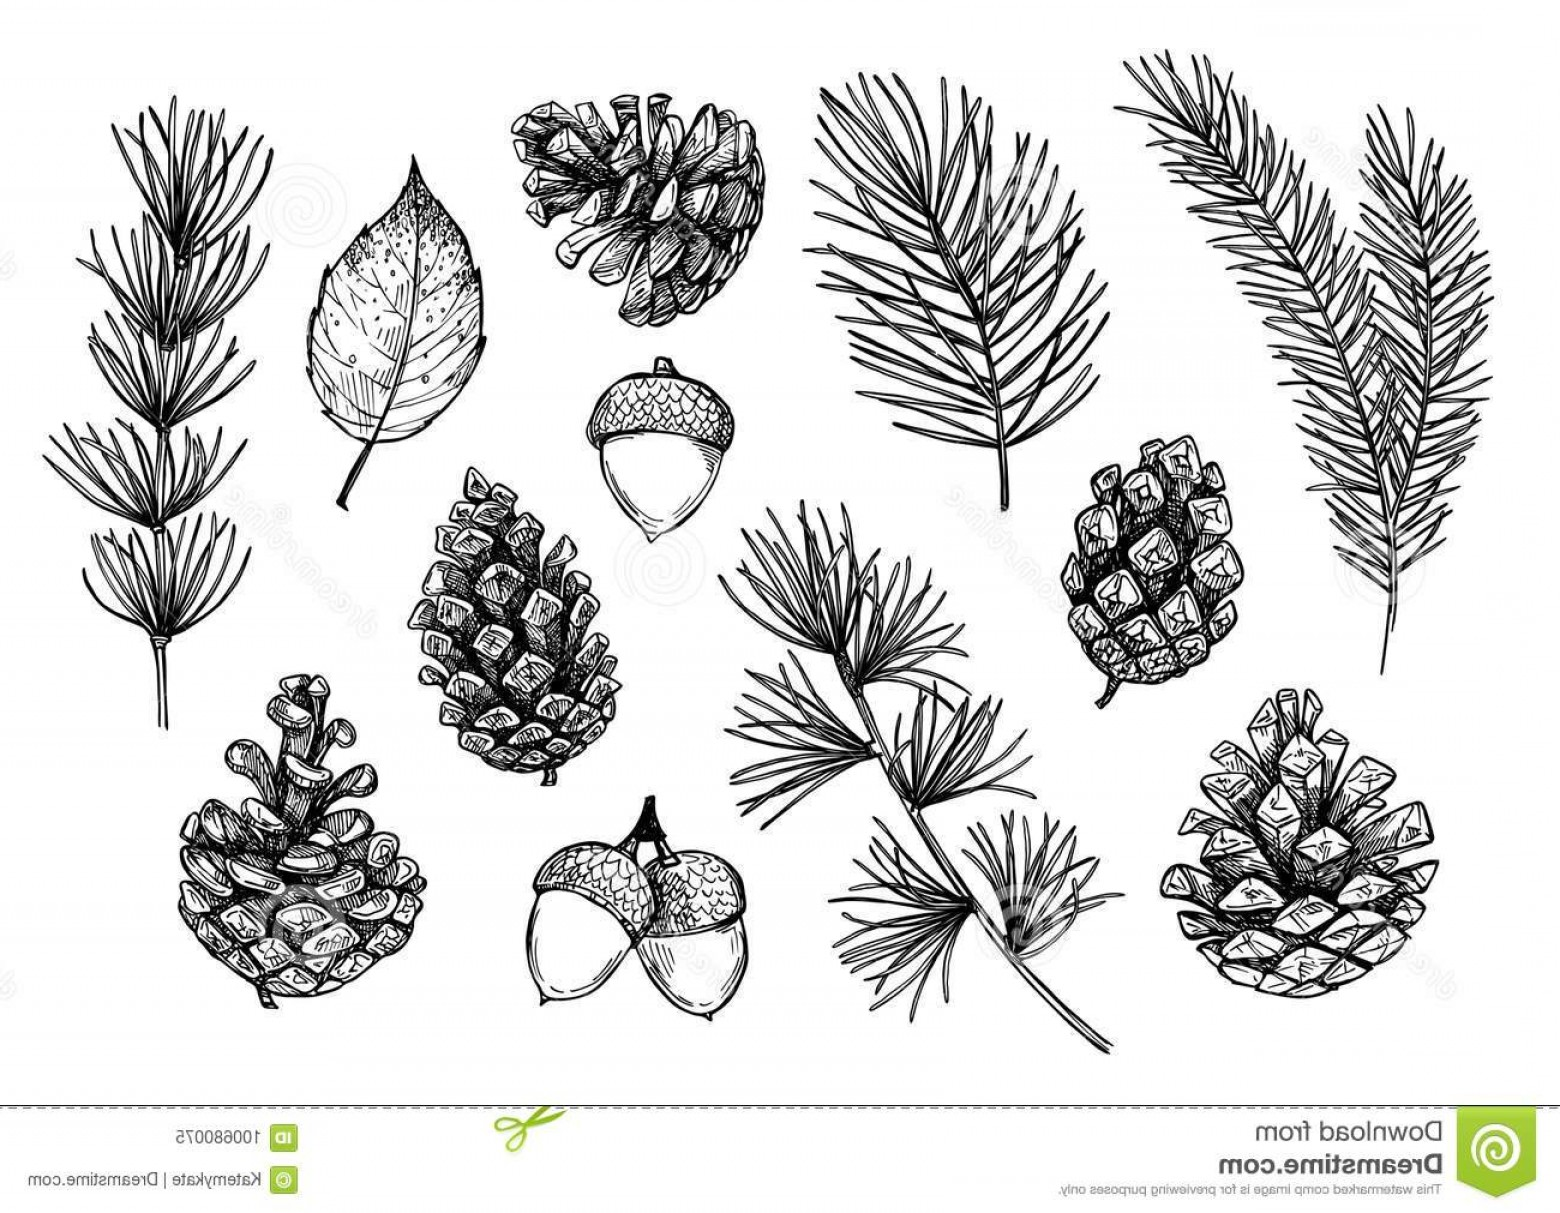 Pine Leaves Vector: Hand Drawn Vector Illustrations Forest Autumn Collection Spru Spruce Branches Acorns Pine Cones Fall Leaves Design Elements Image